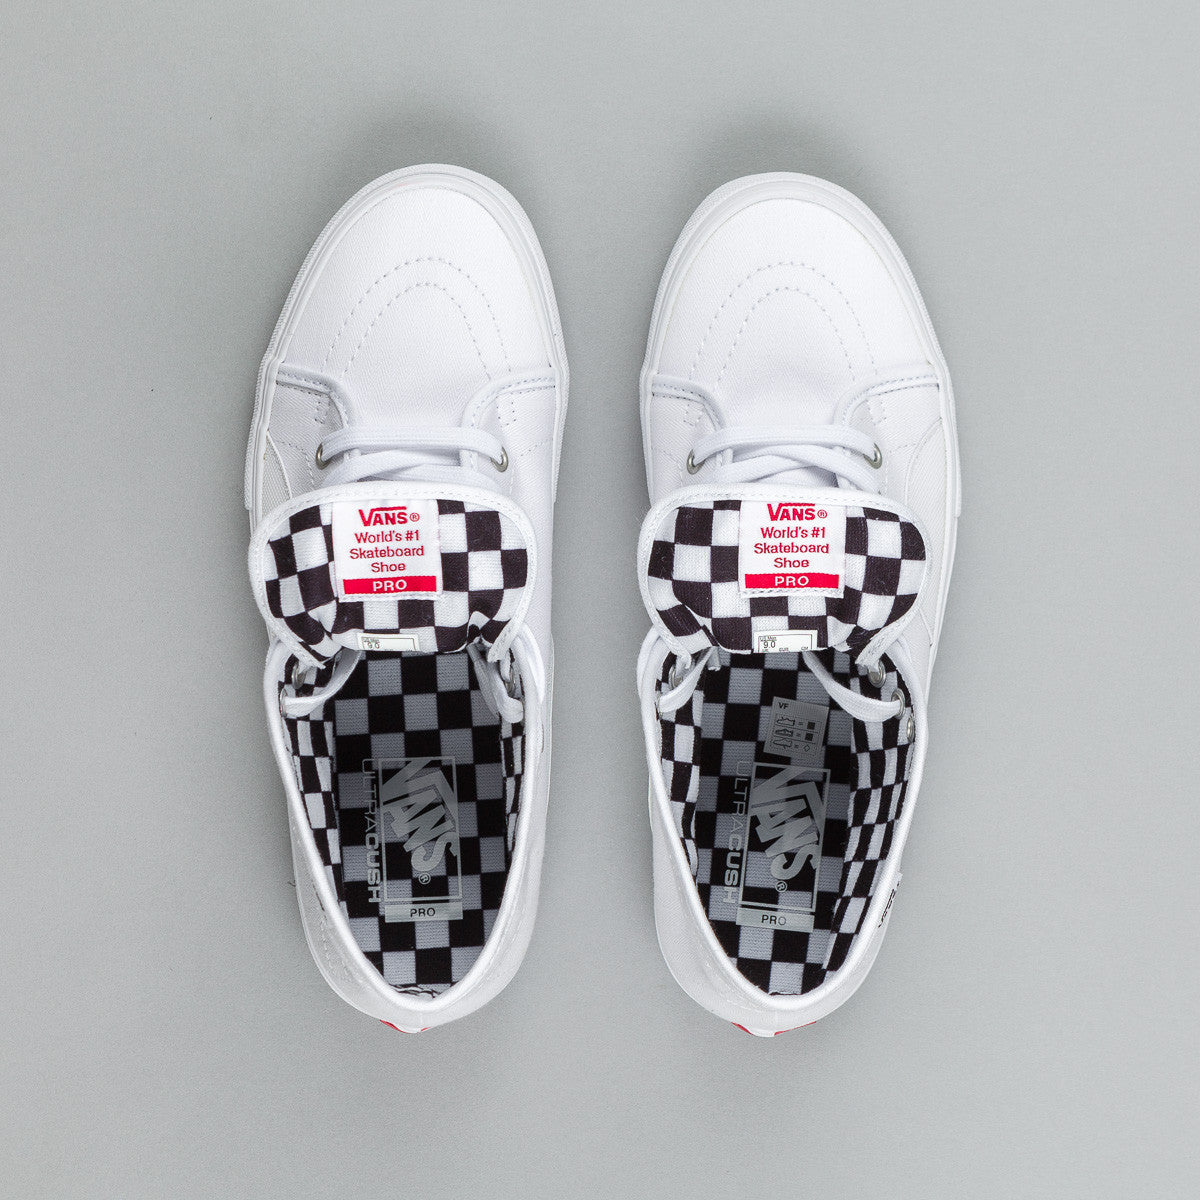 Vans AV Classic High Shoes - Herringbone White / White